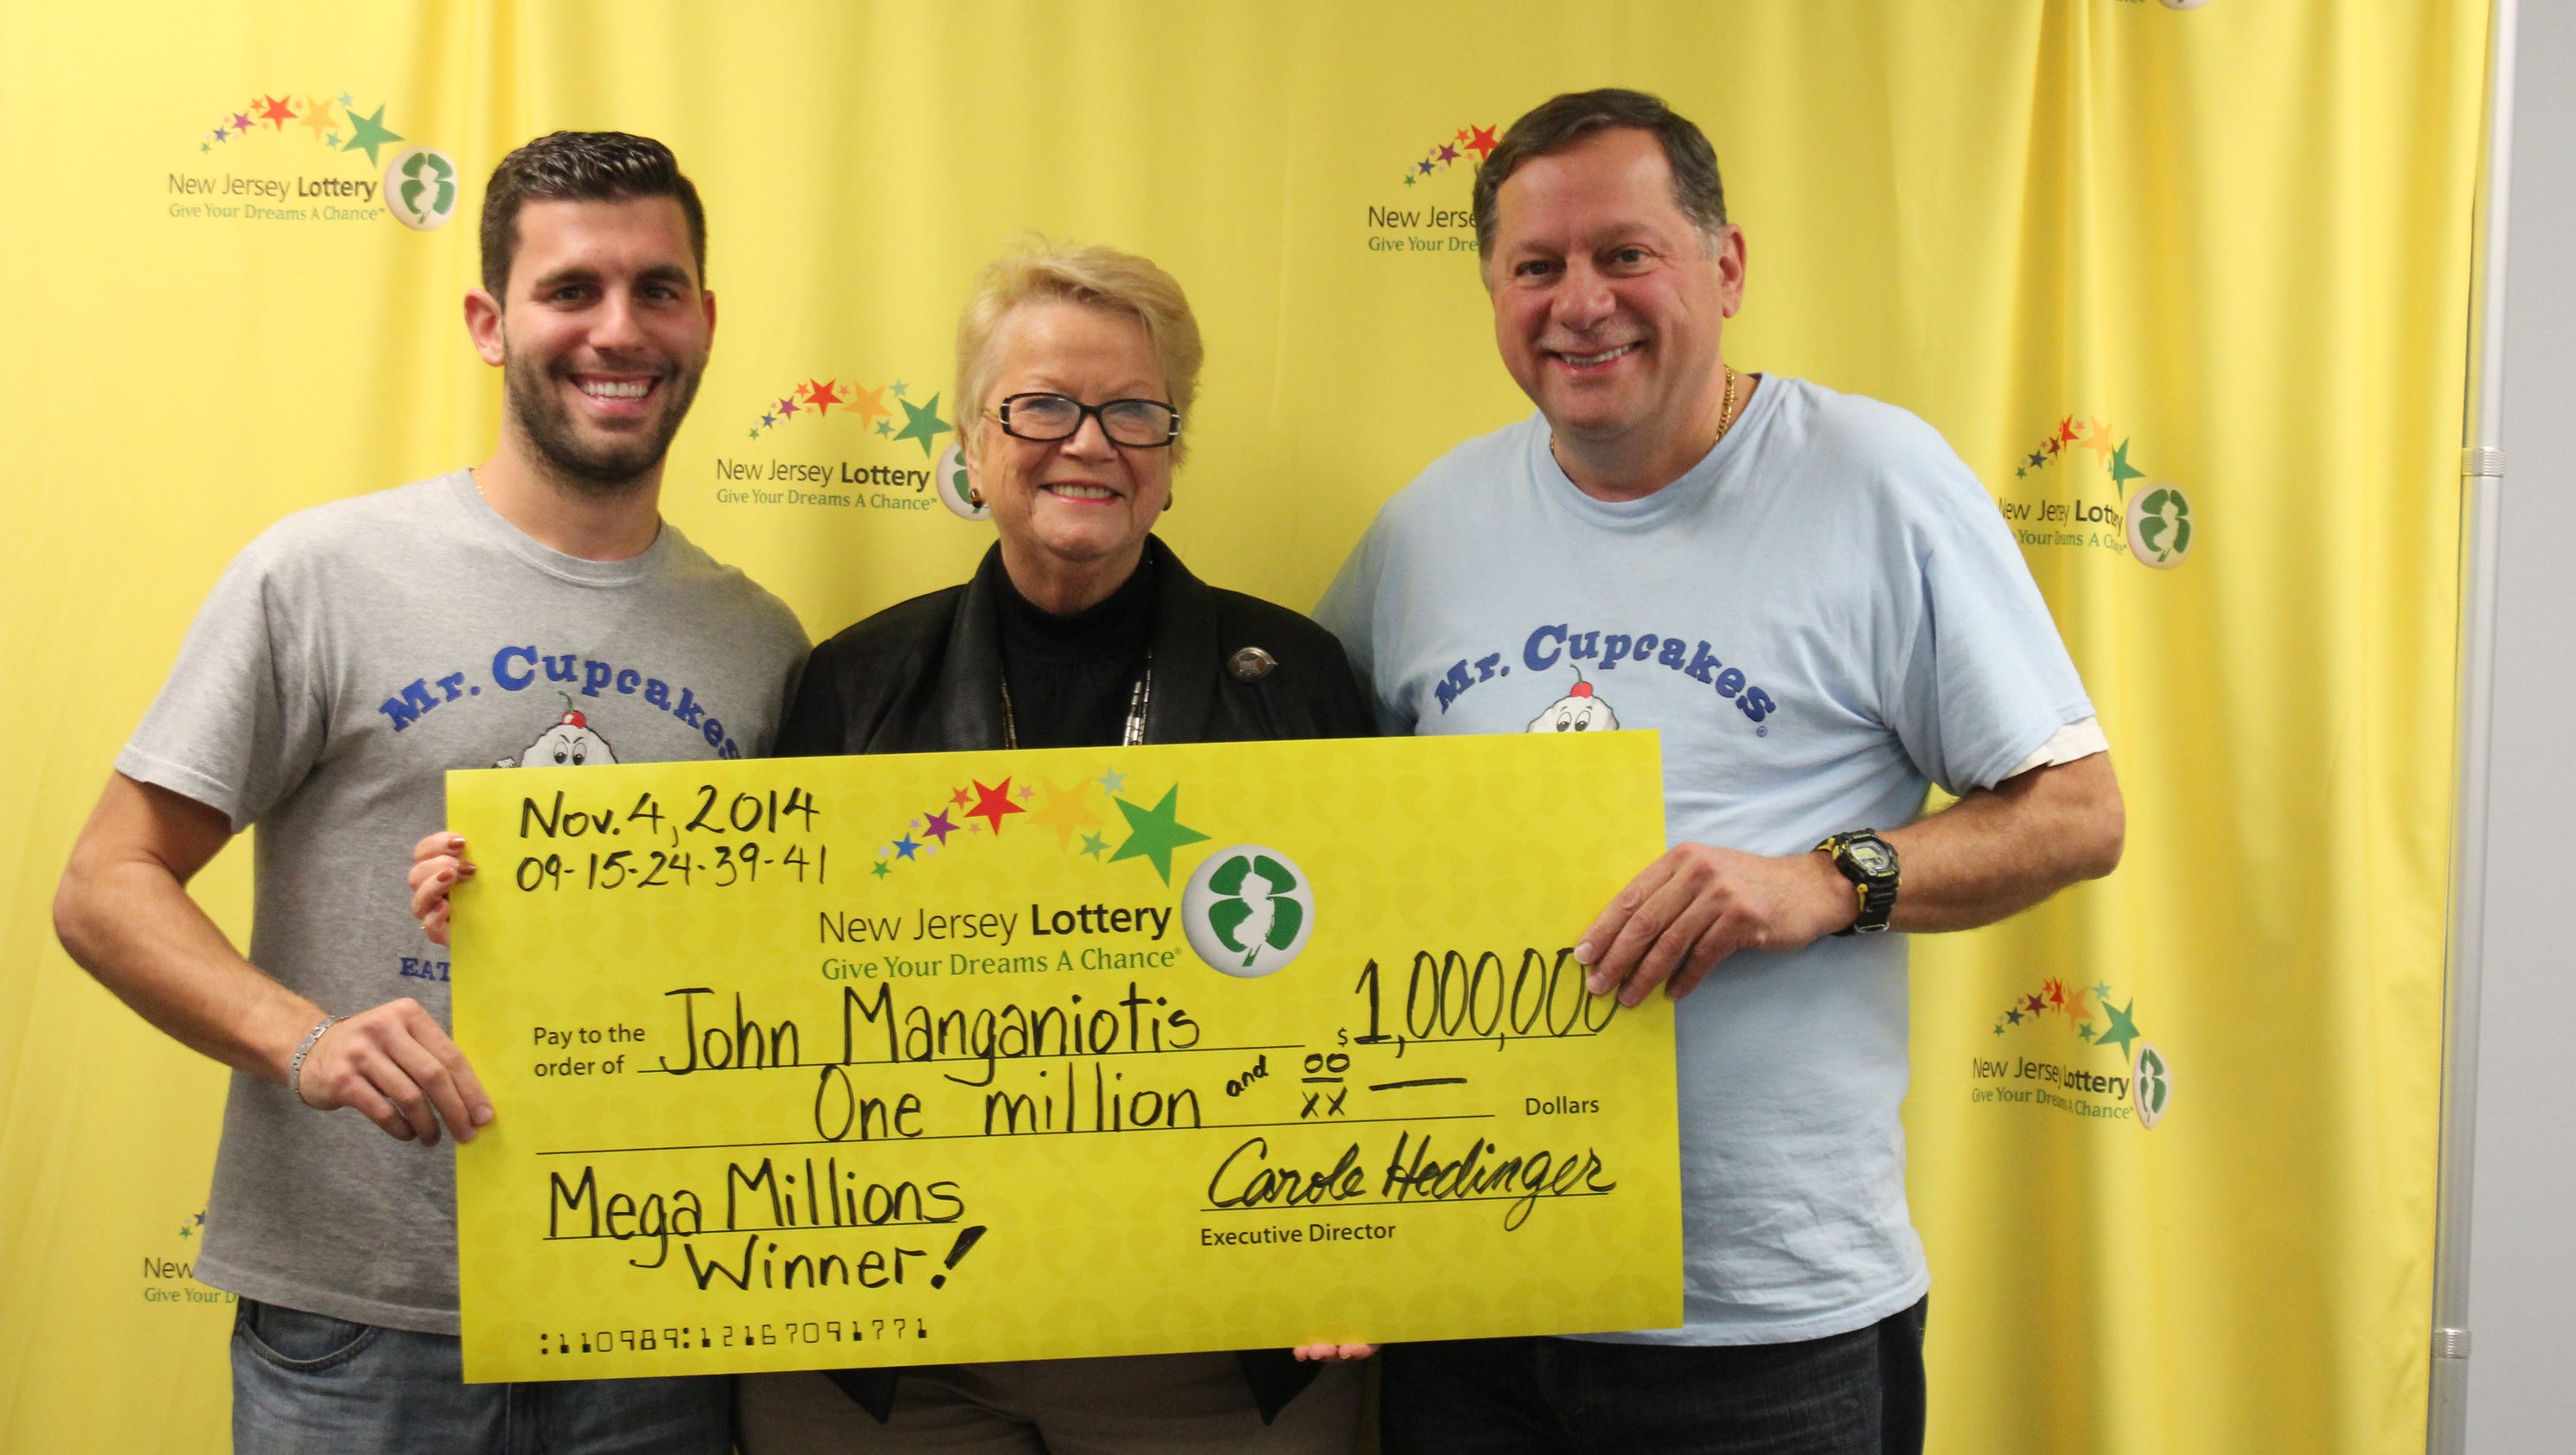 mega millions win is icing on the cake for mr  cupcakes manager